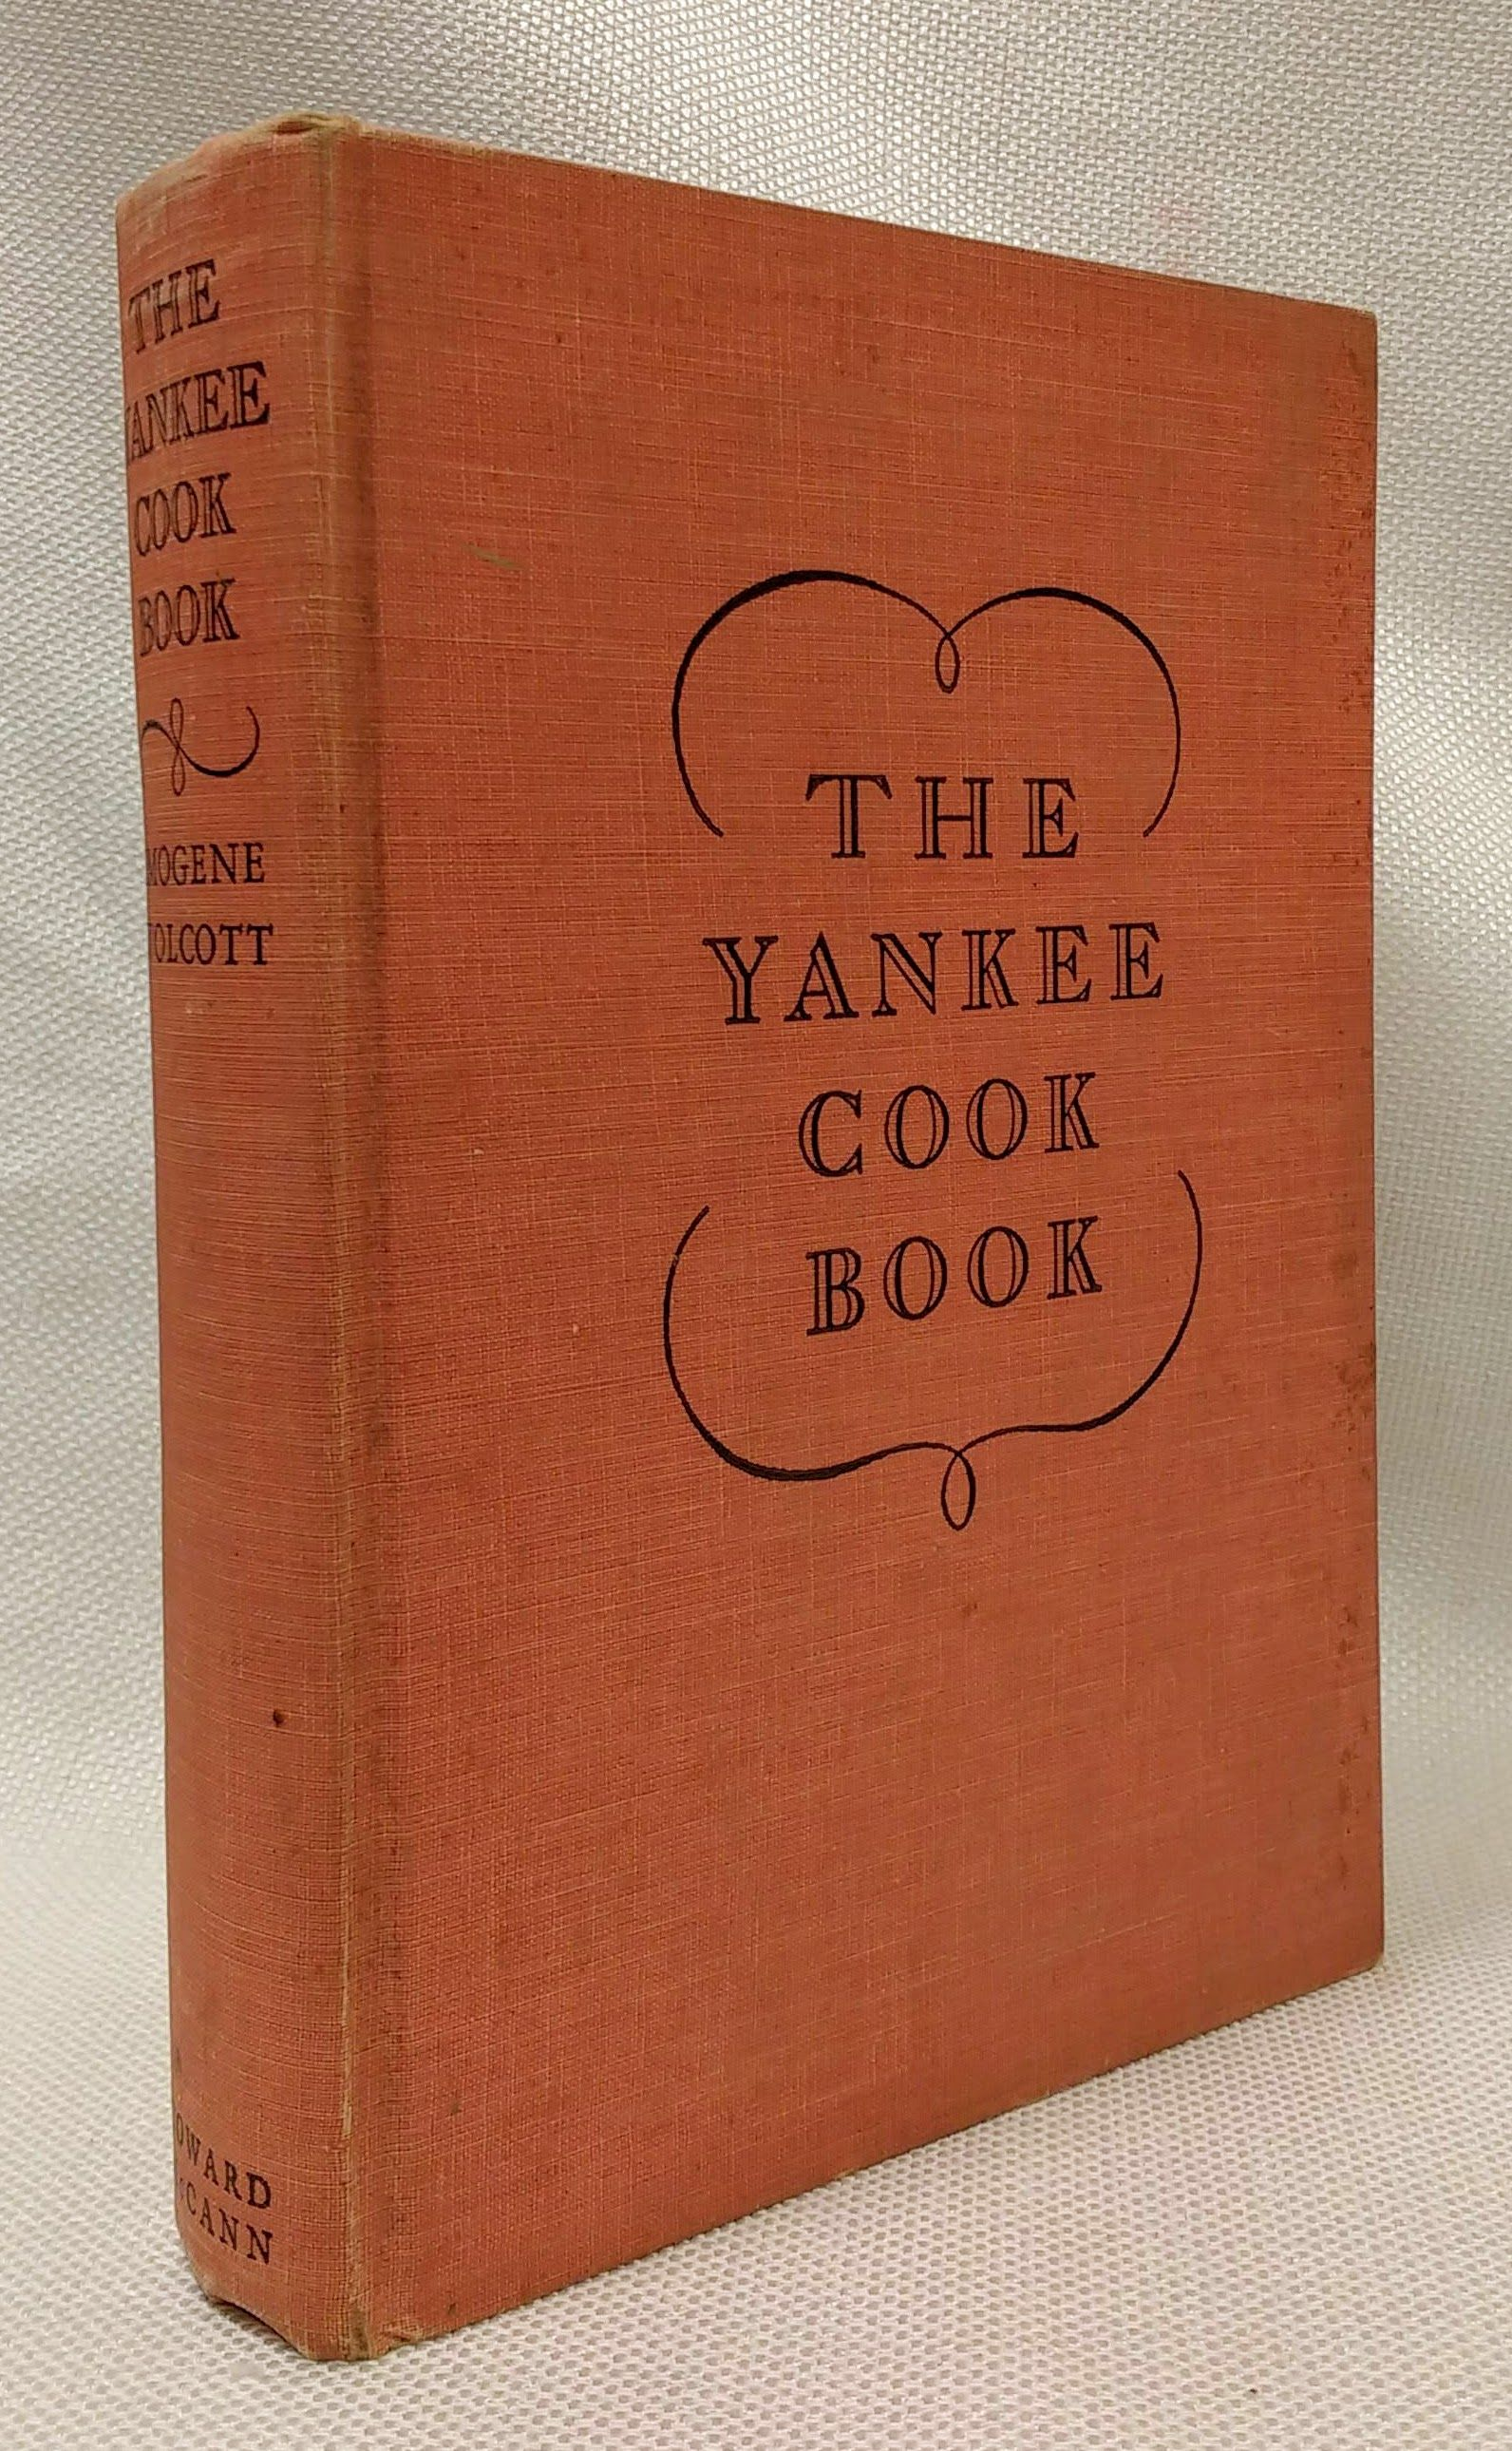 The Yankee Cookbook: An Anthology of Incomparable Recipes from the Six New England States and a Little Something about the People whose Tradition for Good Eating is herein permanently recorded. [First edition, 1939], Wolcott, Imogene